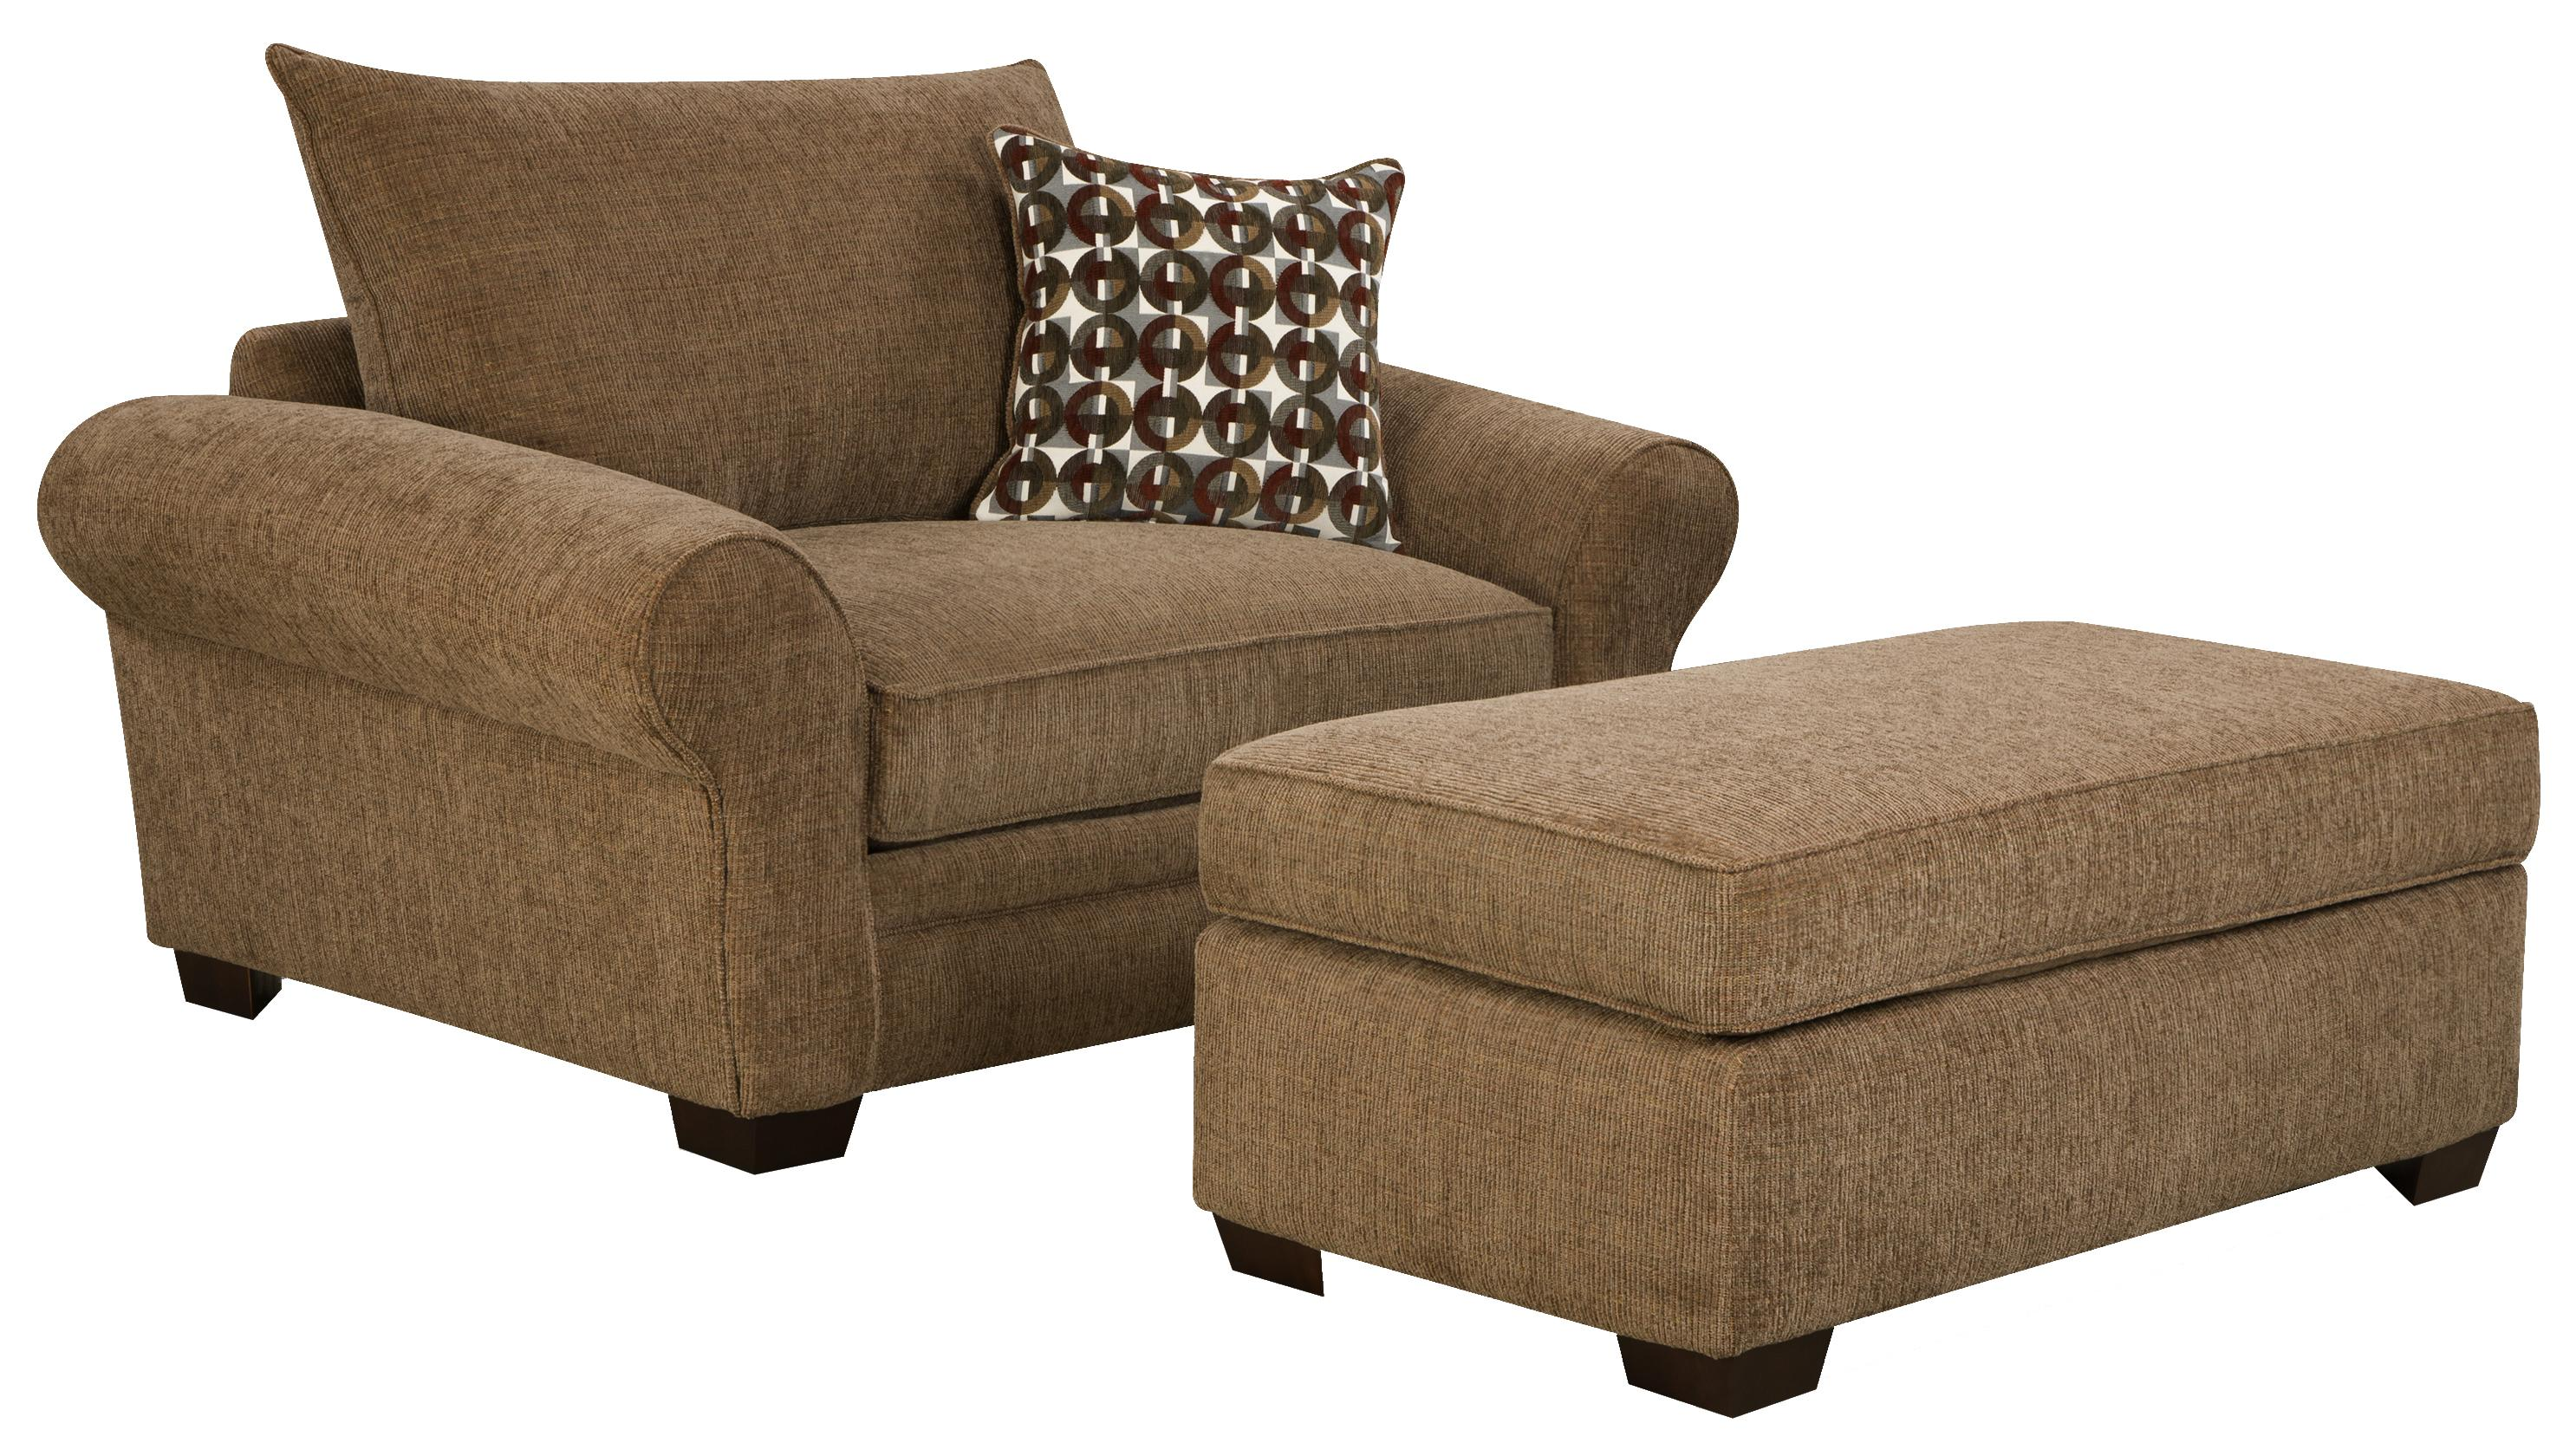 5460 extra large chair and a half ottoman set for casual